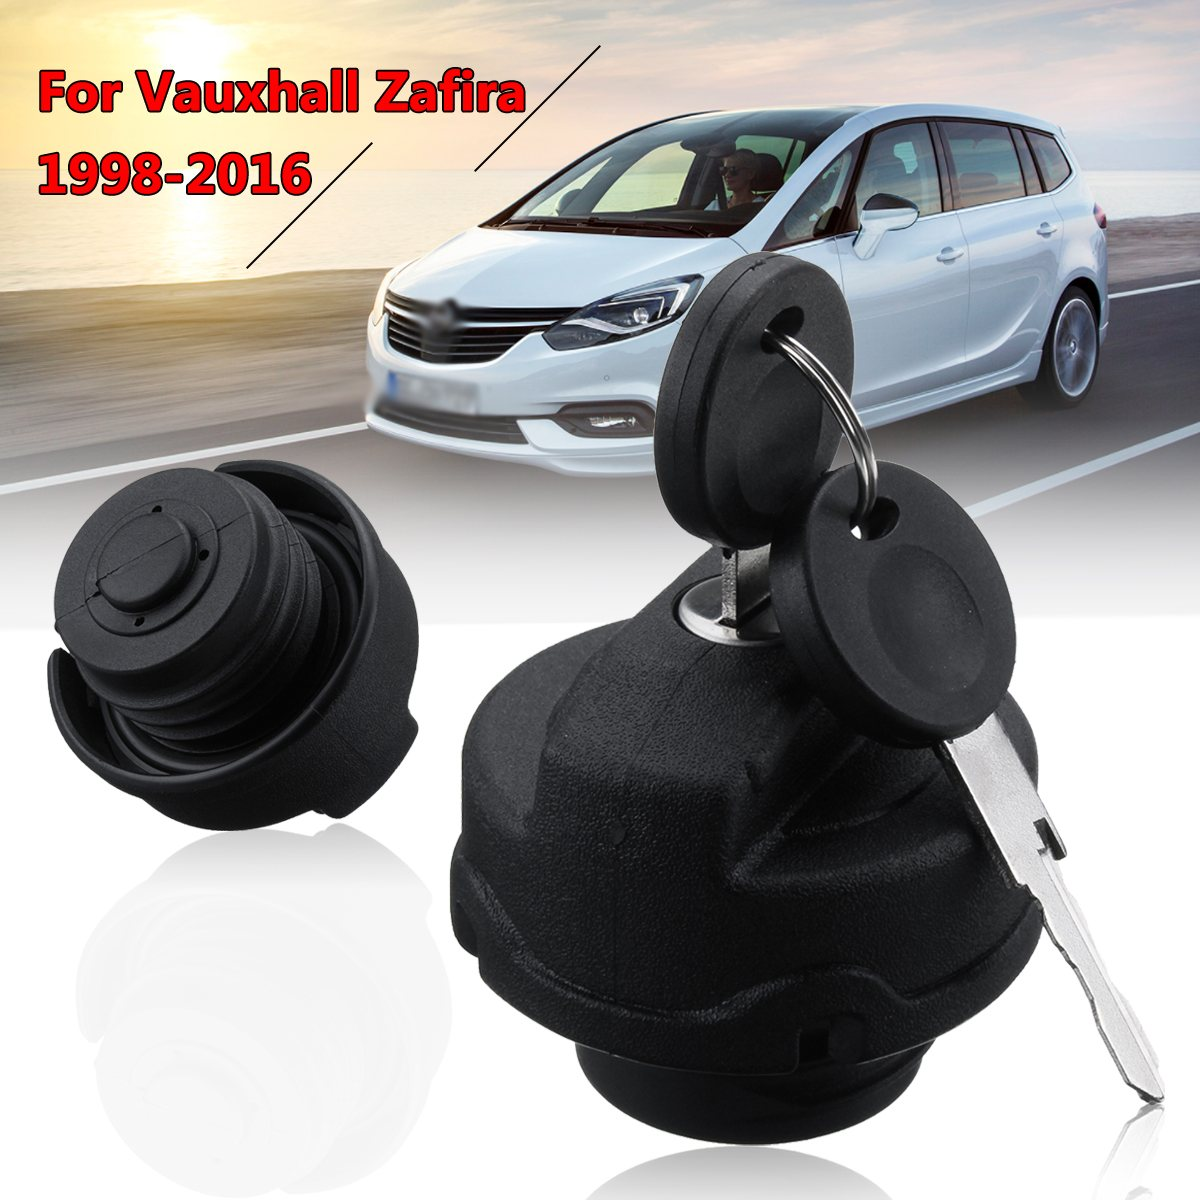 1Pc Car/Automobiles Black Locking Fuel Tank Cap + 2 Keys For Vauxhall Zafira Petrol 1998-2016